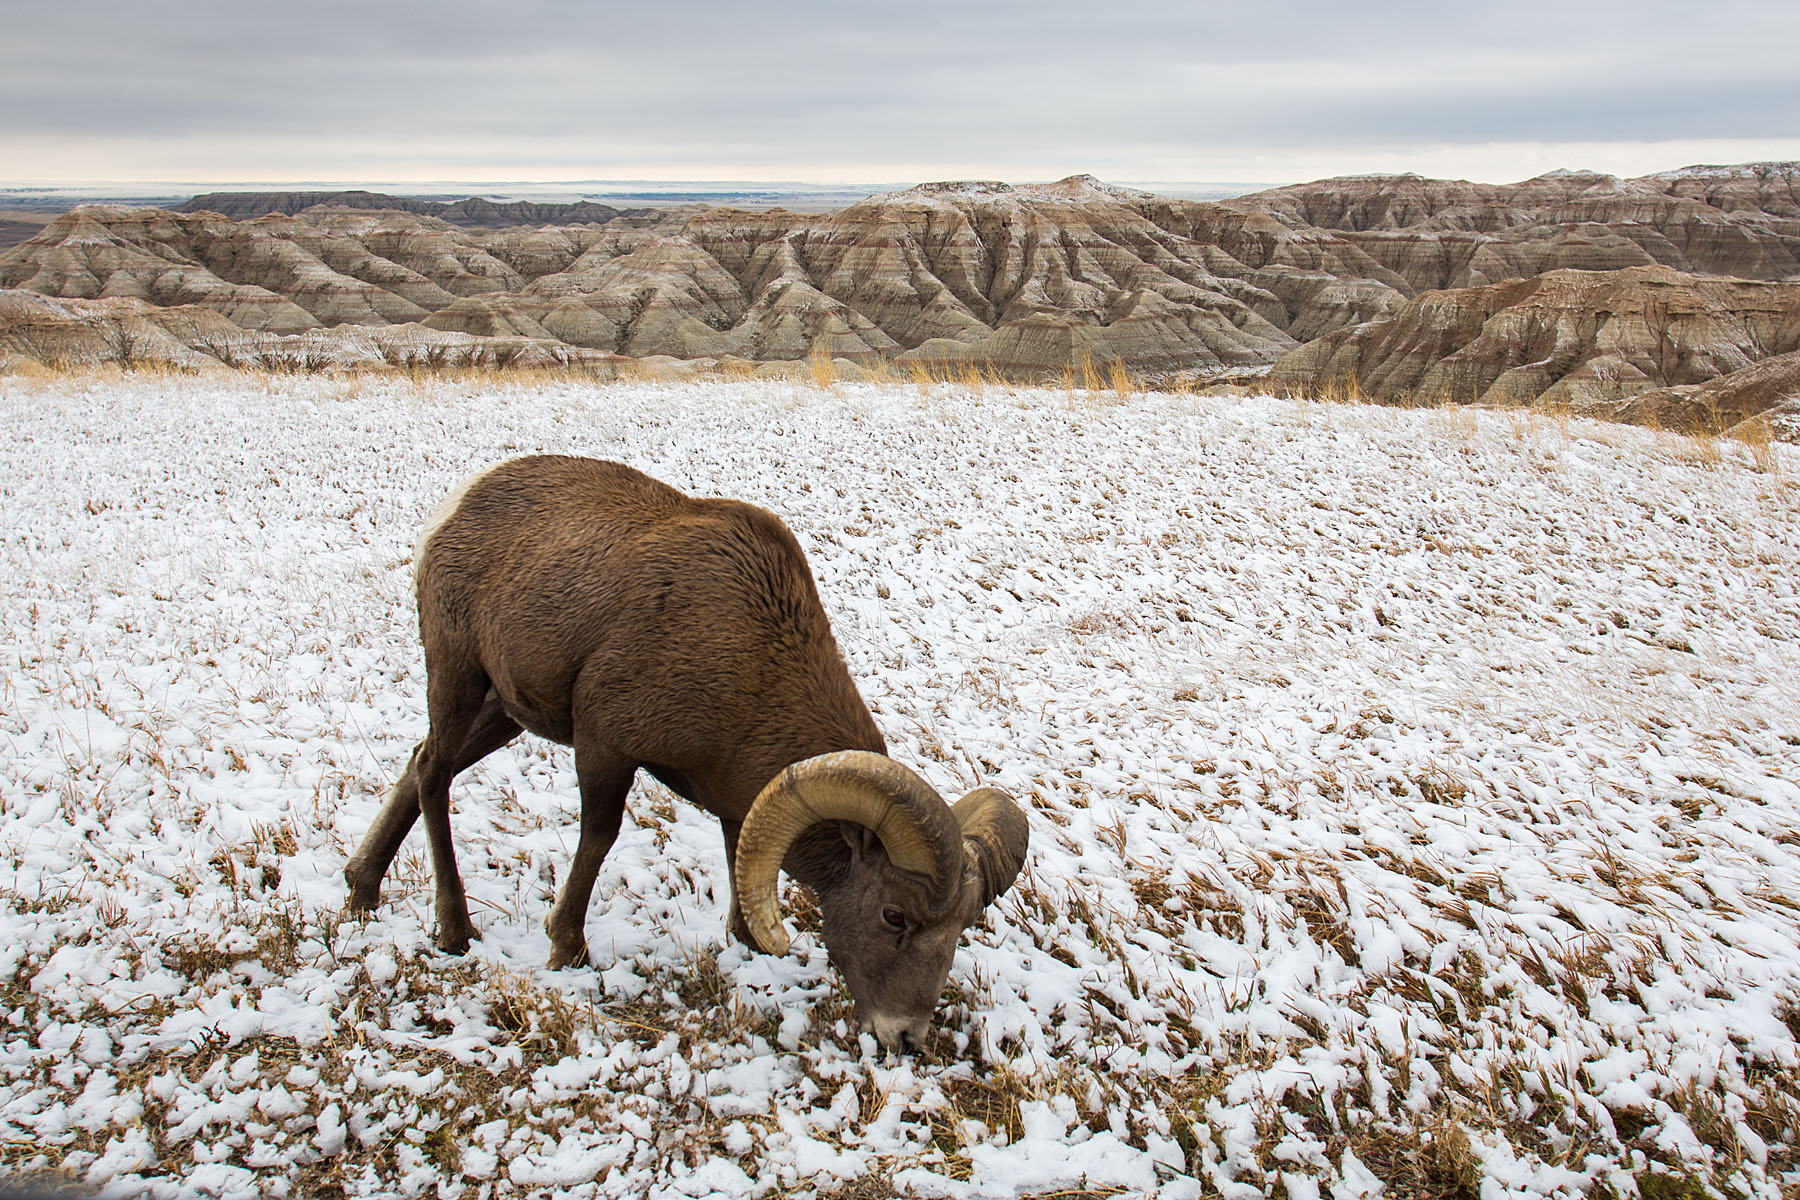 Bighorn sheep in the Badlands after an October 2012 snow.  I was on the wrong side of the car so I passed the camera to my future fiancé Sue, who took this shot.  Click for next photo.